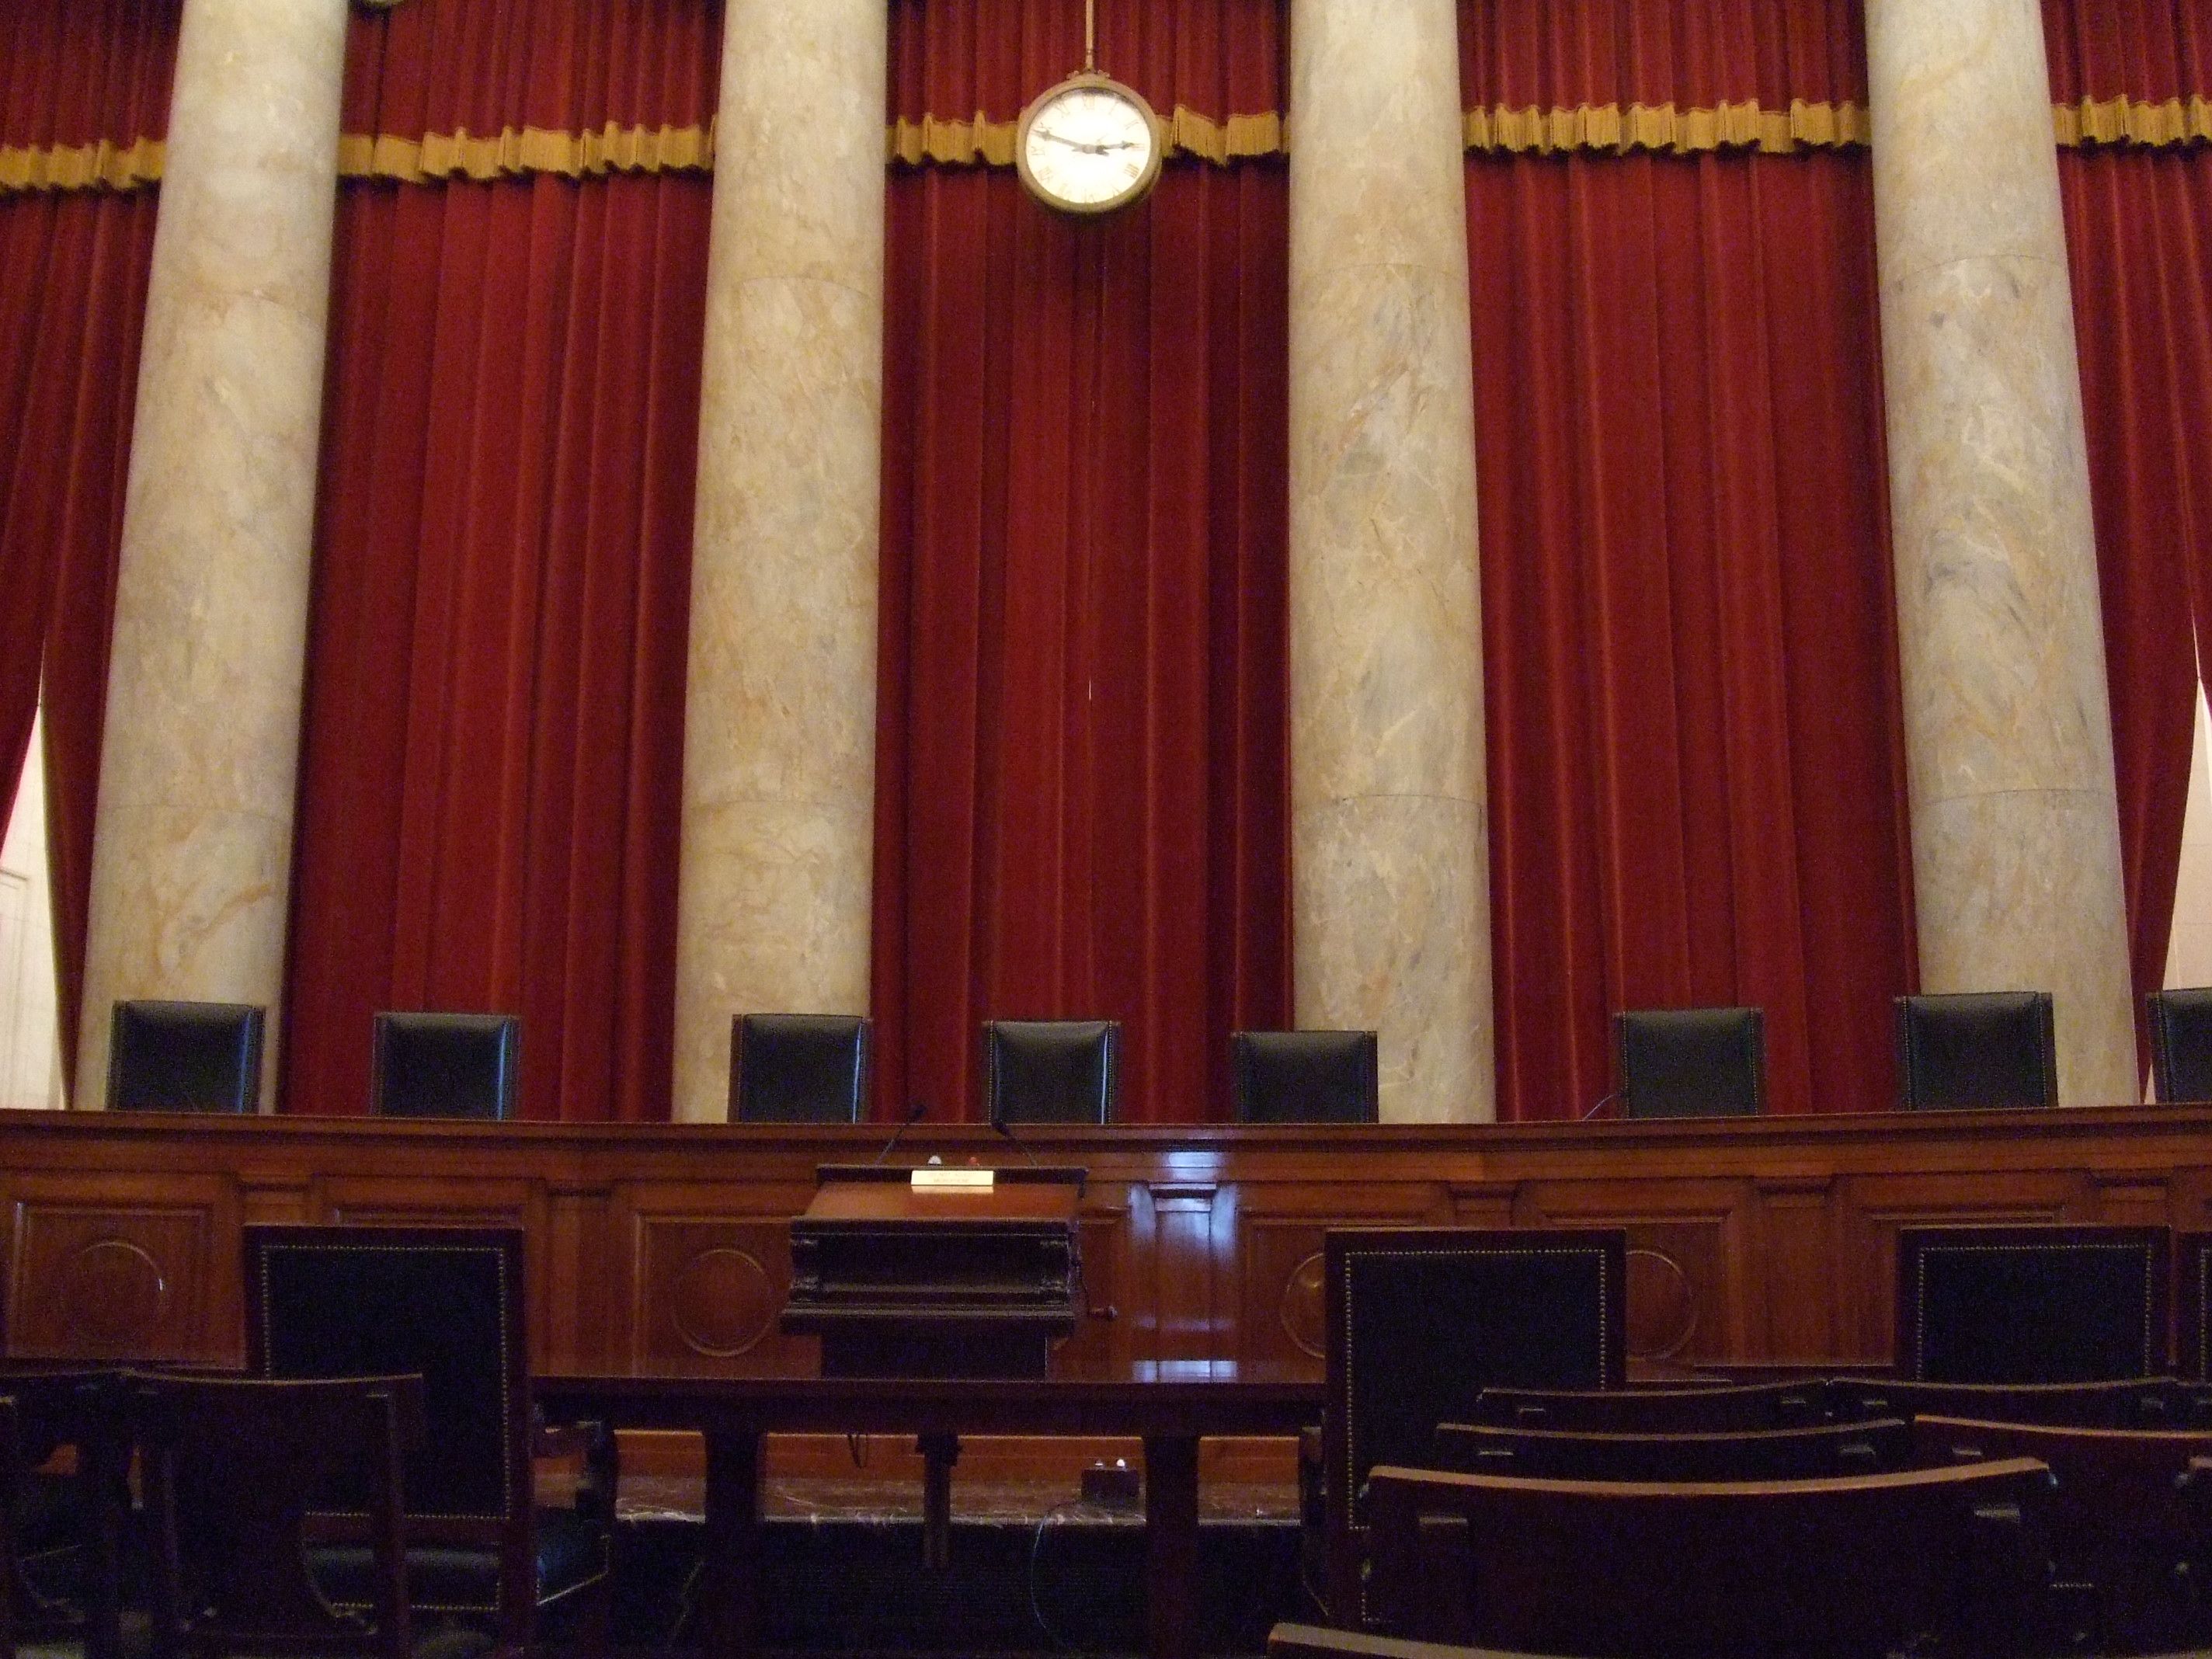 California Will The US Supreme Court Rule In Favor Of An Anonymous Tip Exception For Reckless And Drunk Driving